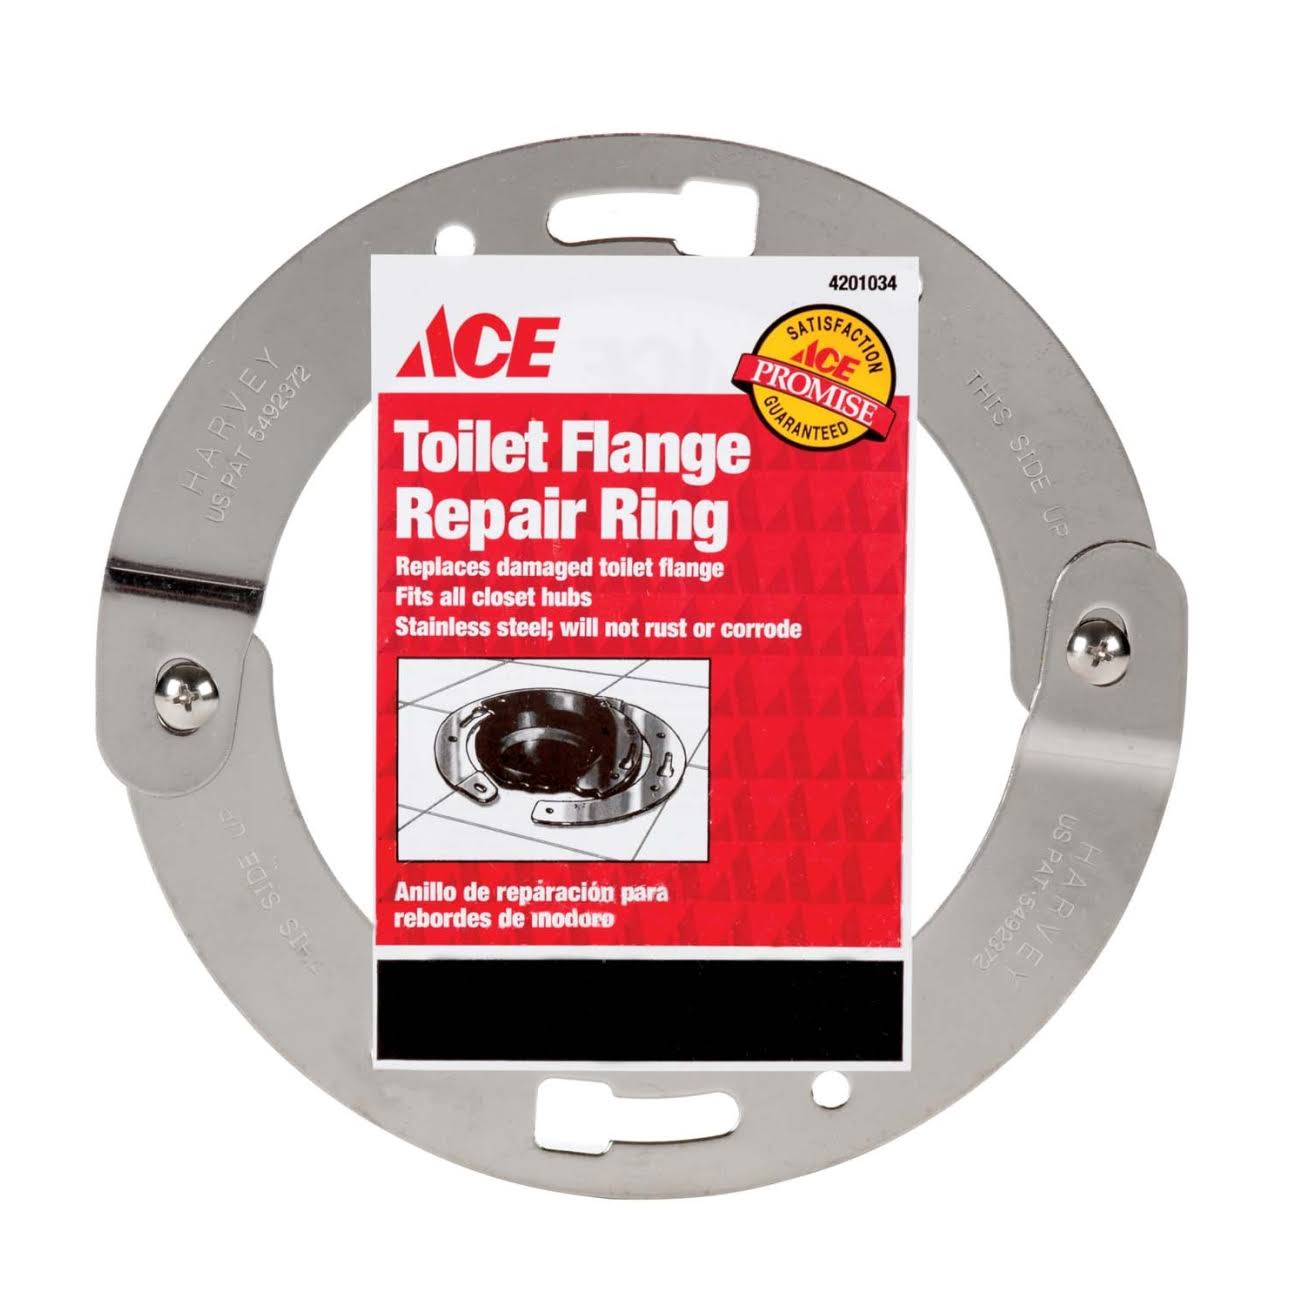 Ace Toilet Flange Repair Ring